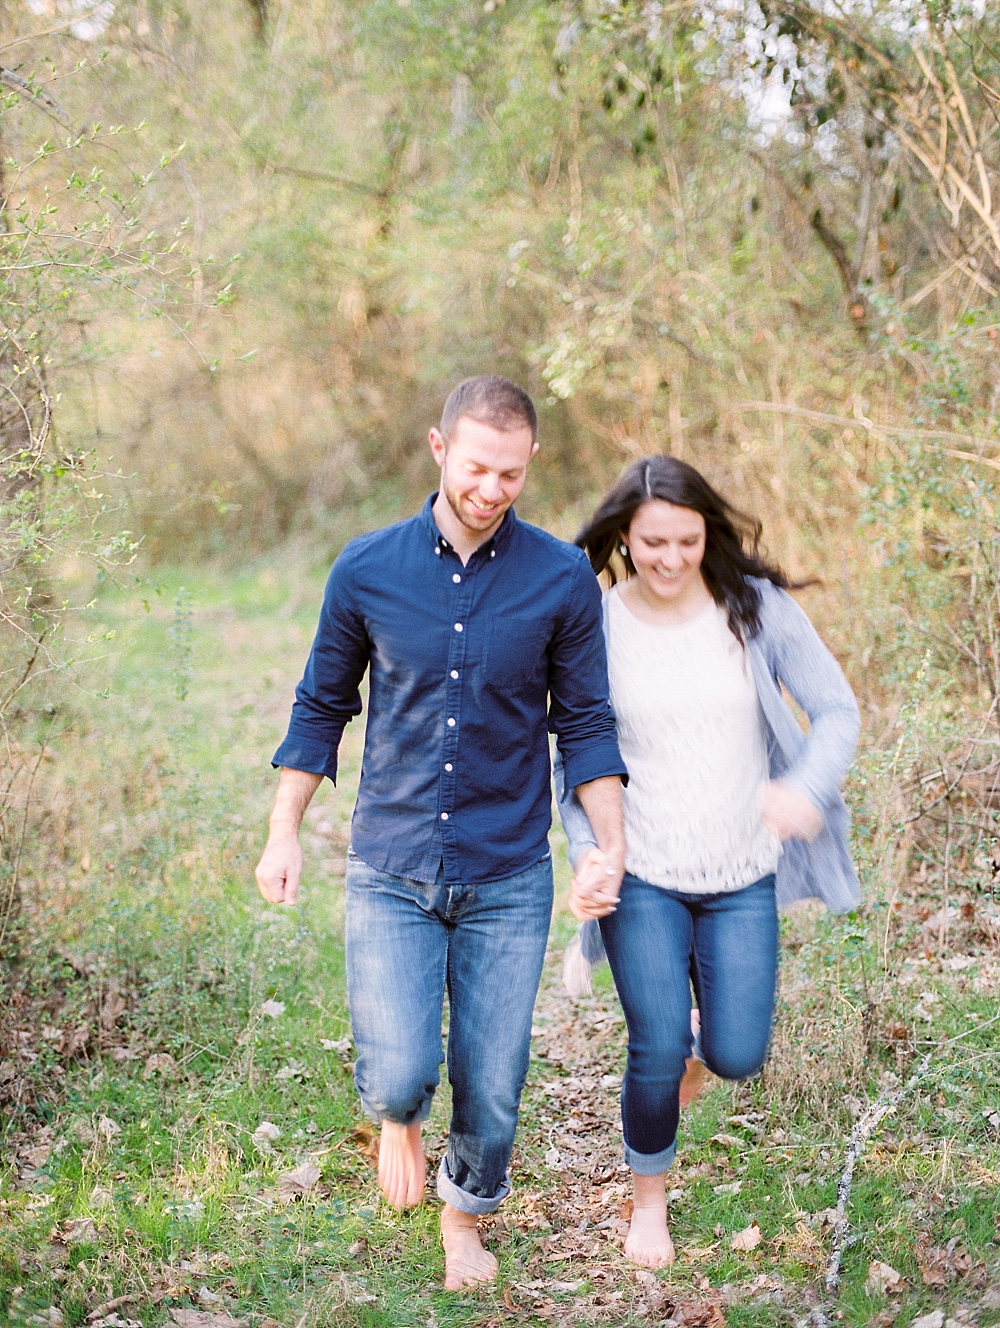 JuicebeatsPhotography_KnoxvilleEngagement_Kristina&Ben_0041.jpg